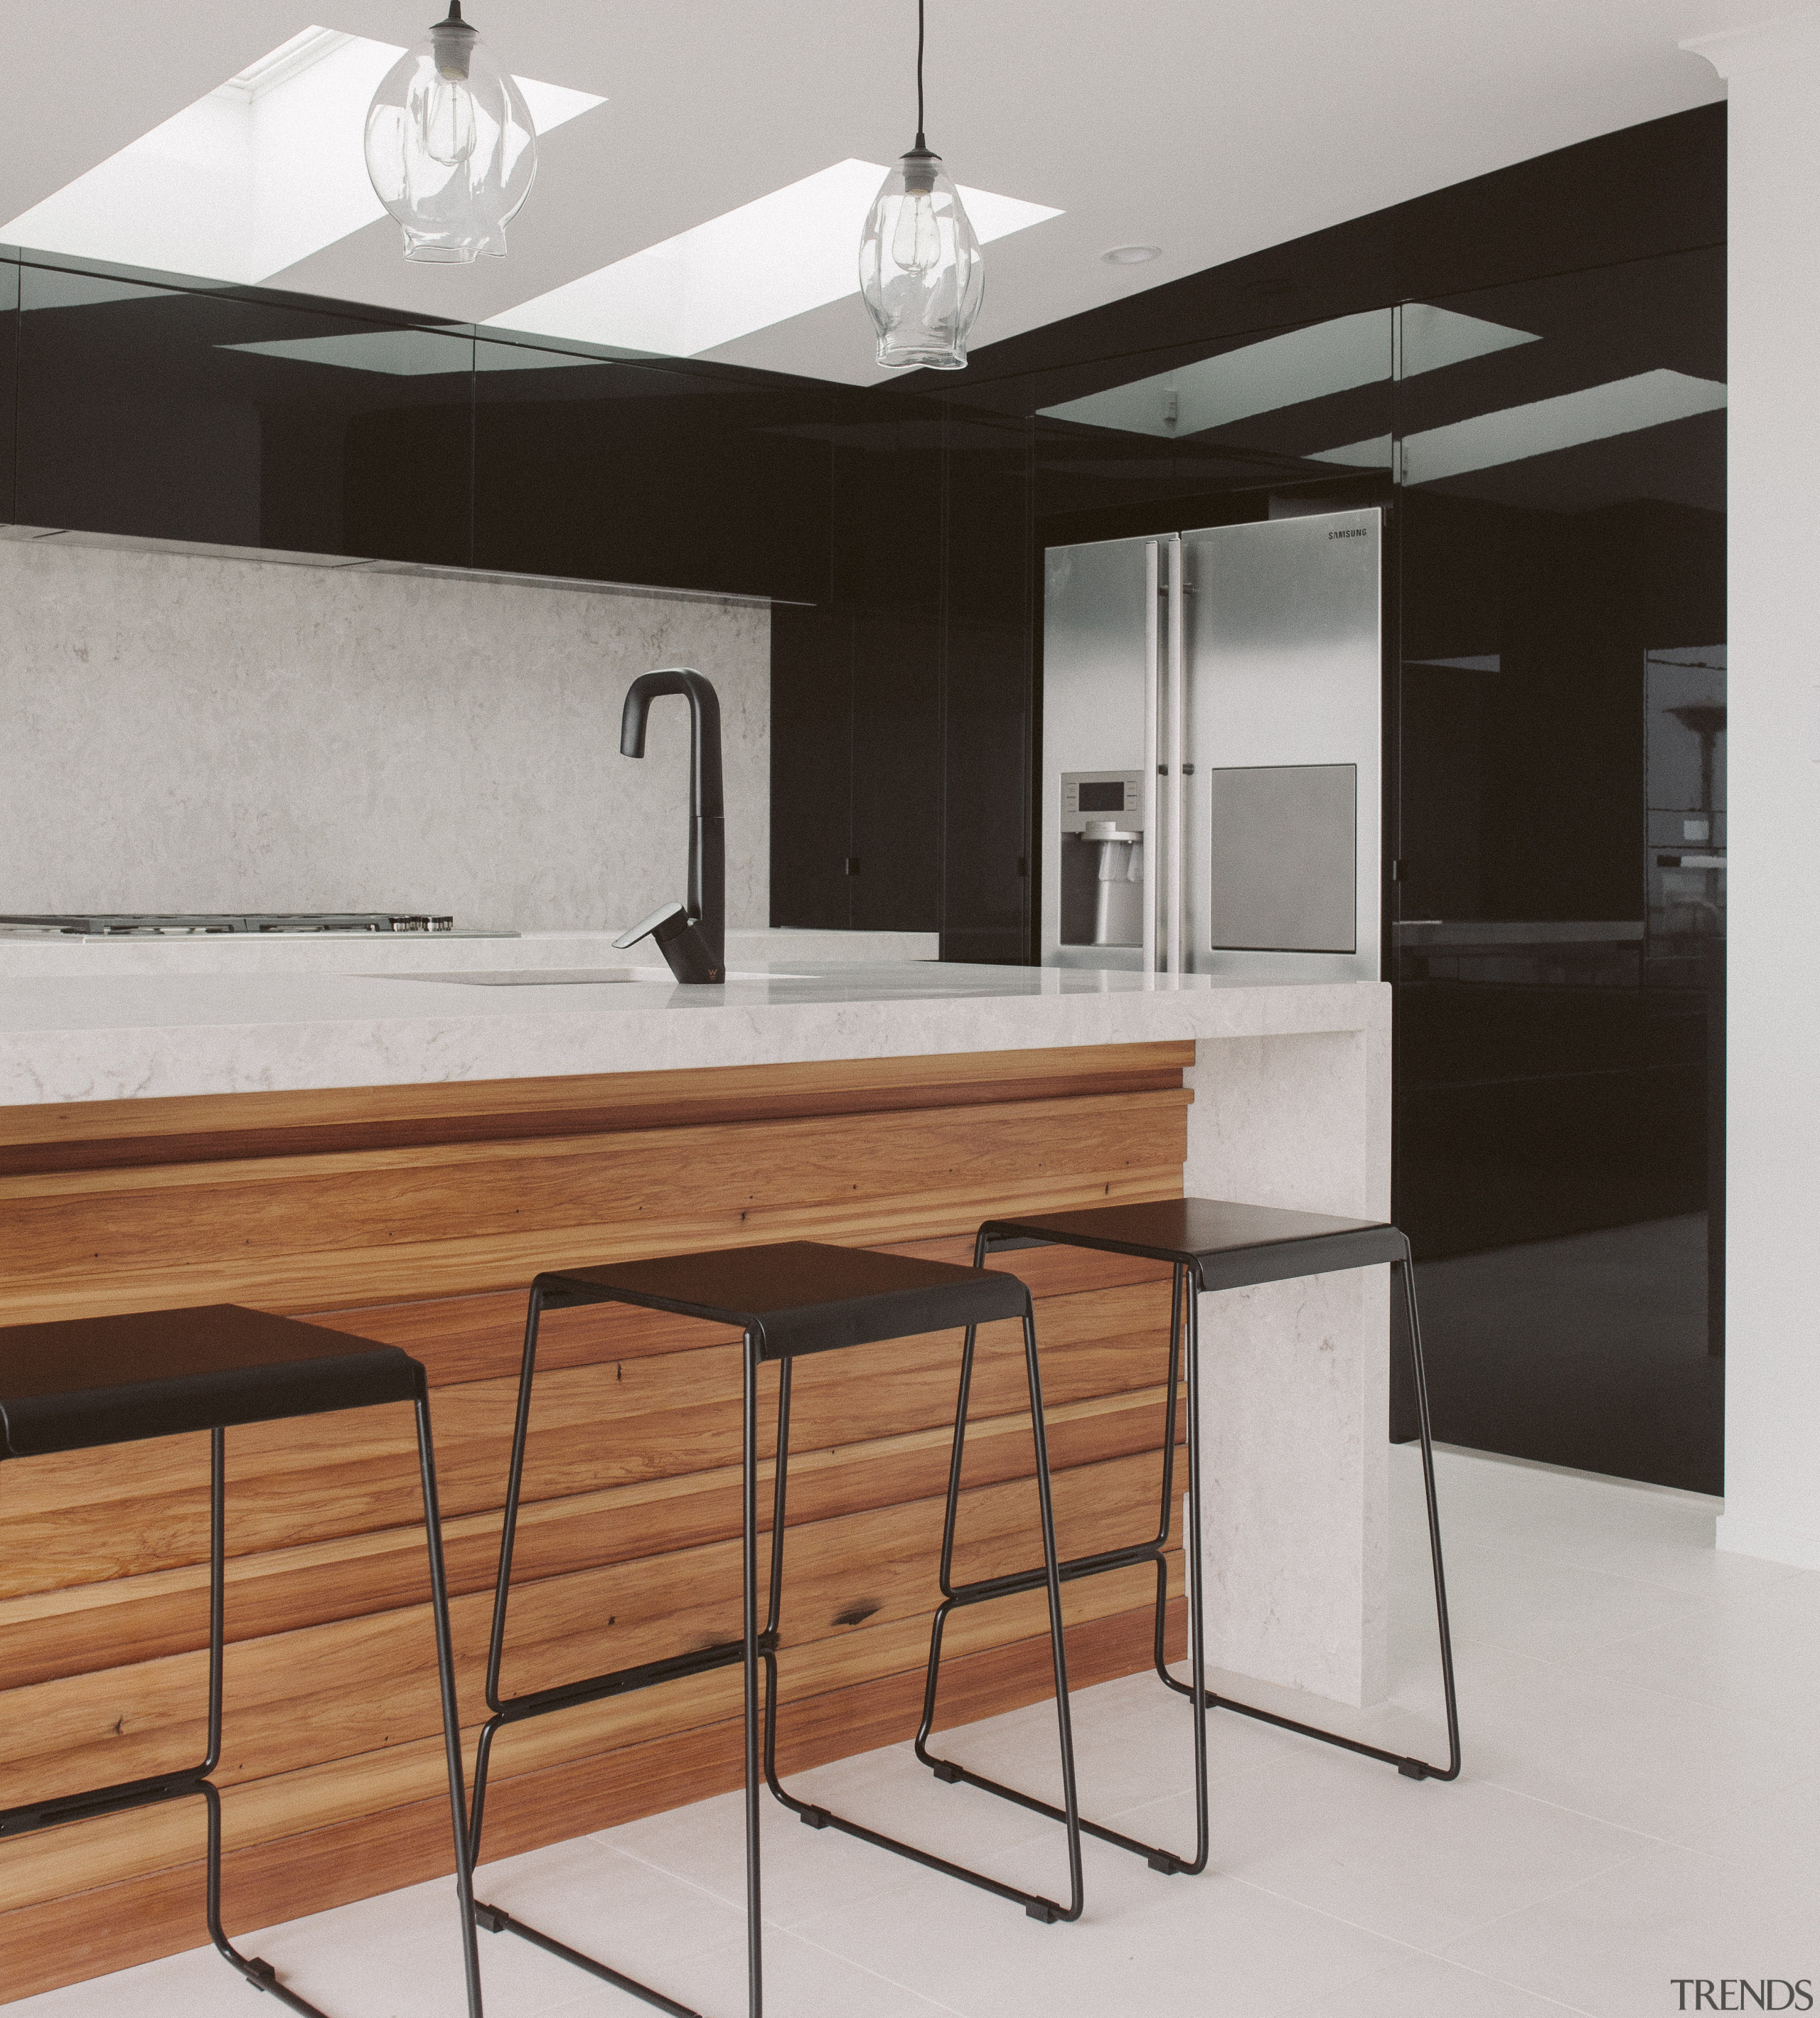 Black gloss cabinetry reflecst the sea, and stone cabinetry, countertop, floor, furniture, interior design, kitchen, table, gray, black